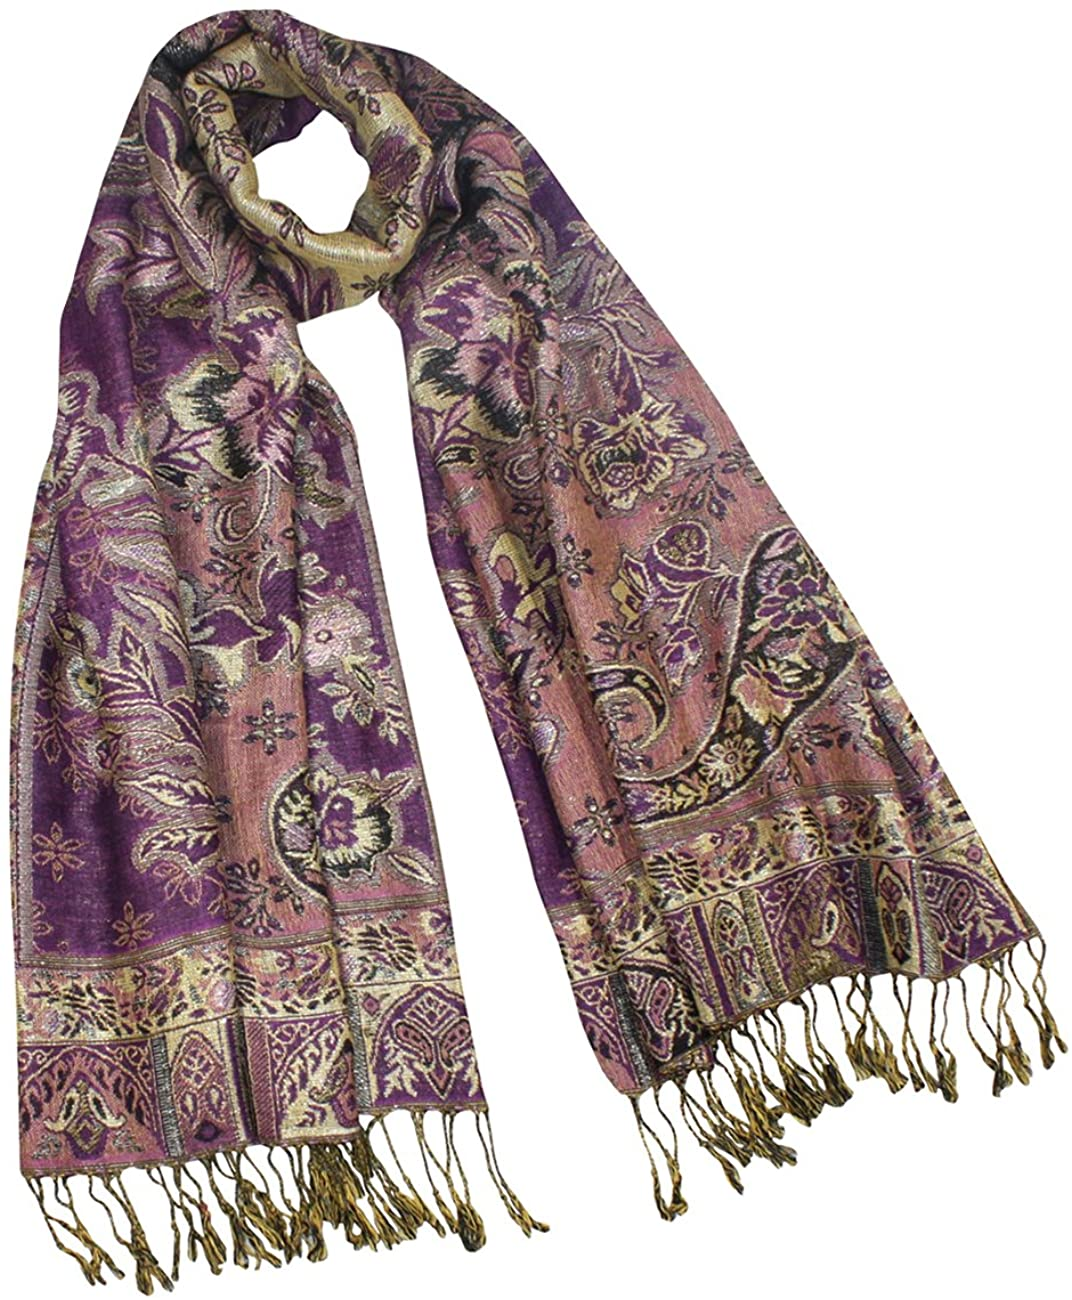 Rayon Metallic Paisley Flower Garden Two-Sided Reversible Scarf